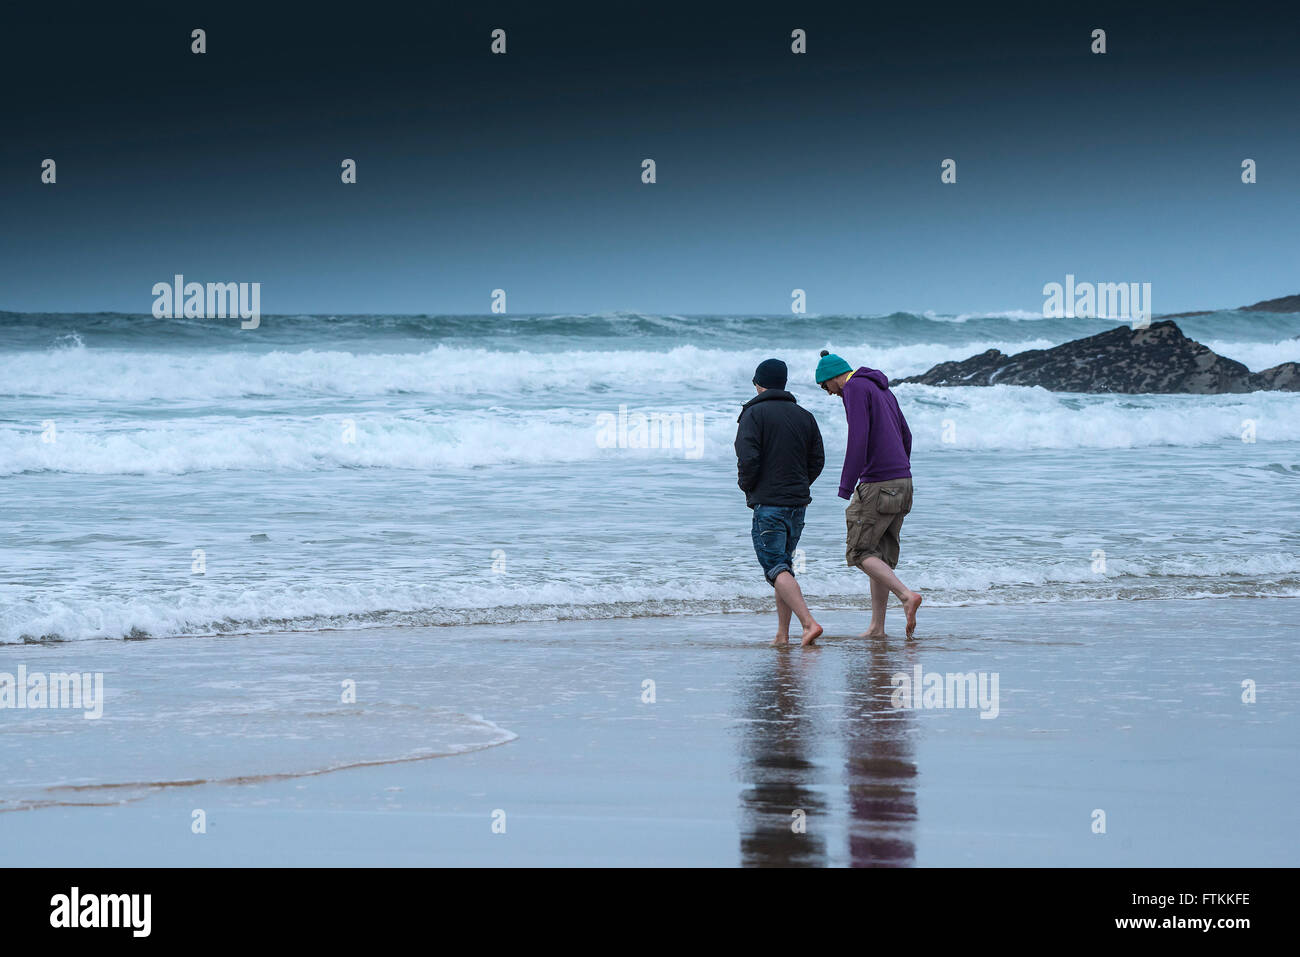 Two friends go for a paddle on a cold, chilly day at Fistral Beach in Newquay, Cornwall. - Stock Image